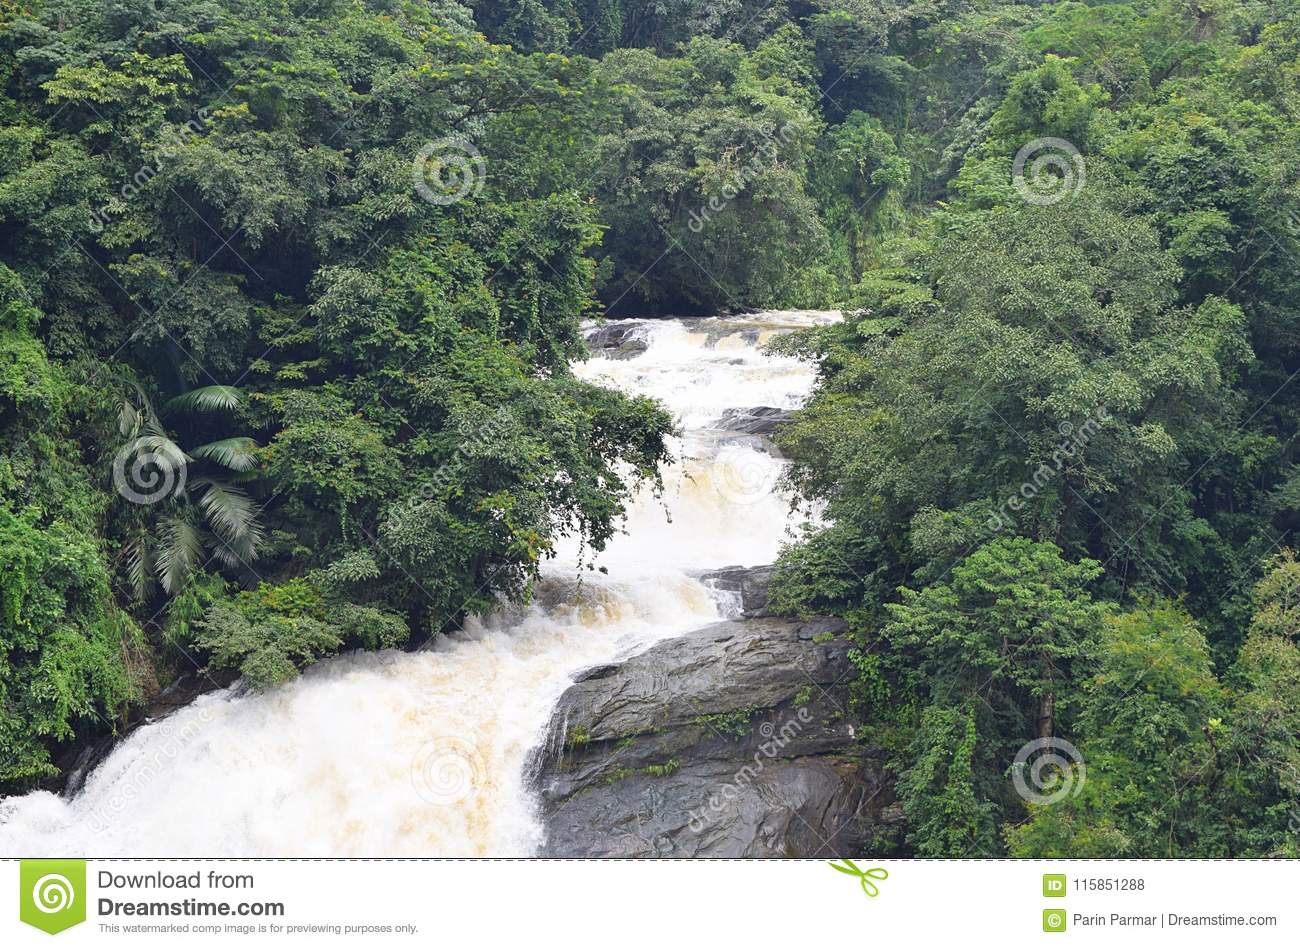 Flowing Milky White Water Valara Waterfalls In Thick Forest In